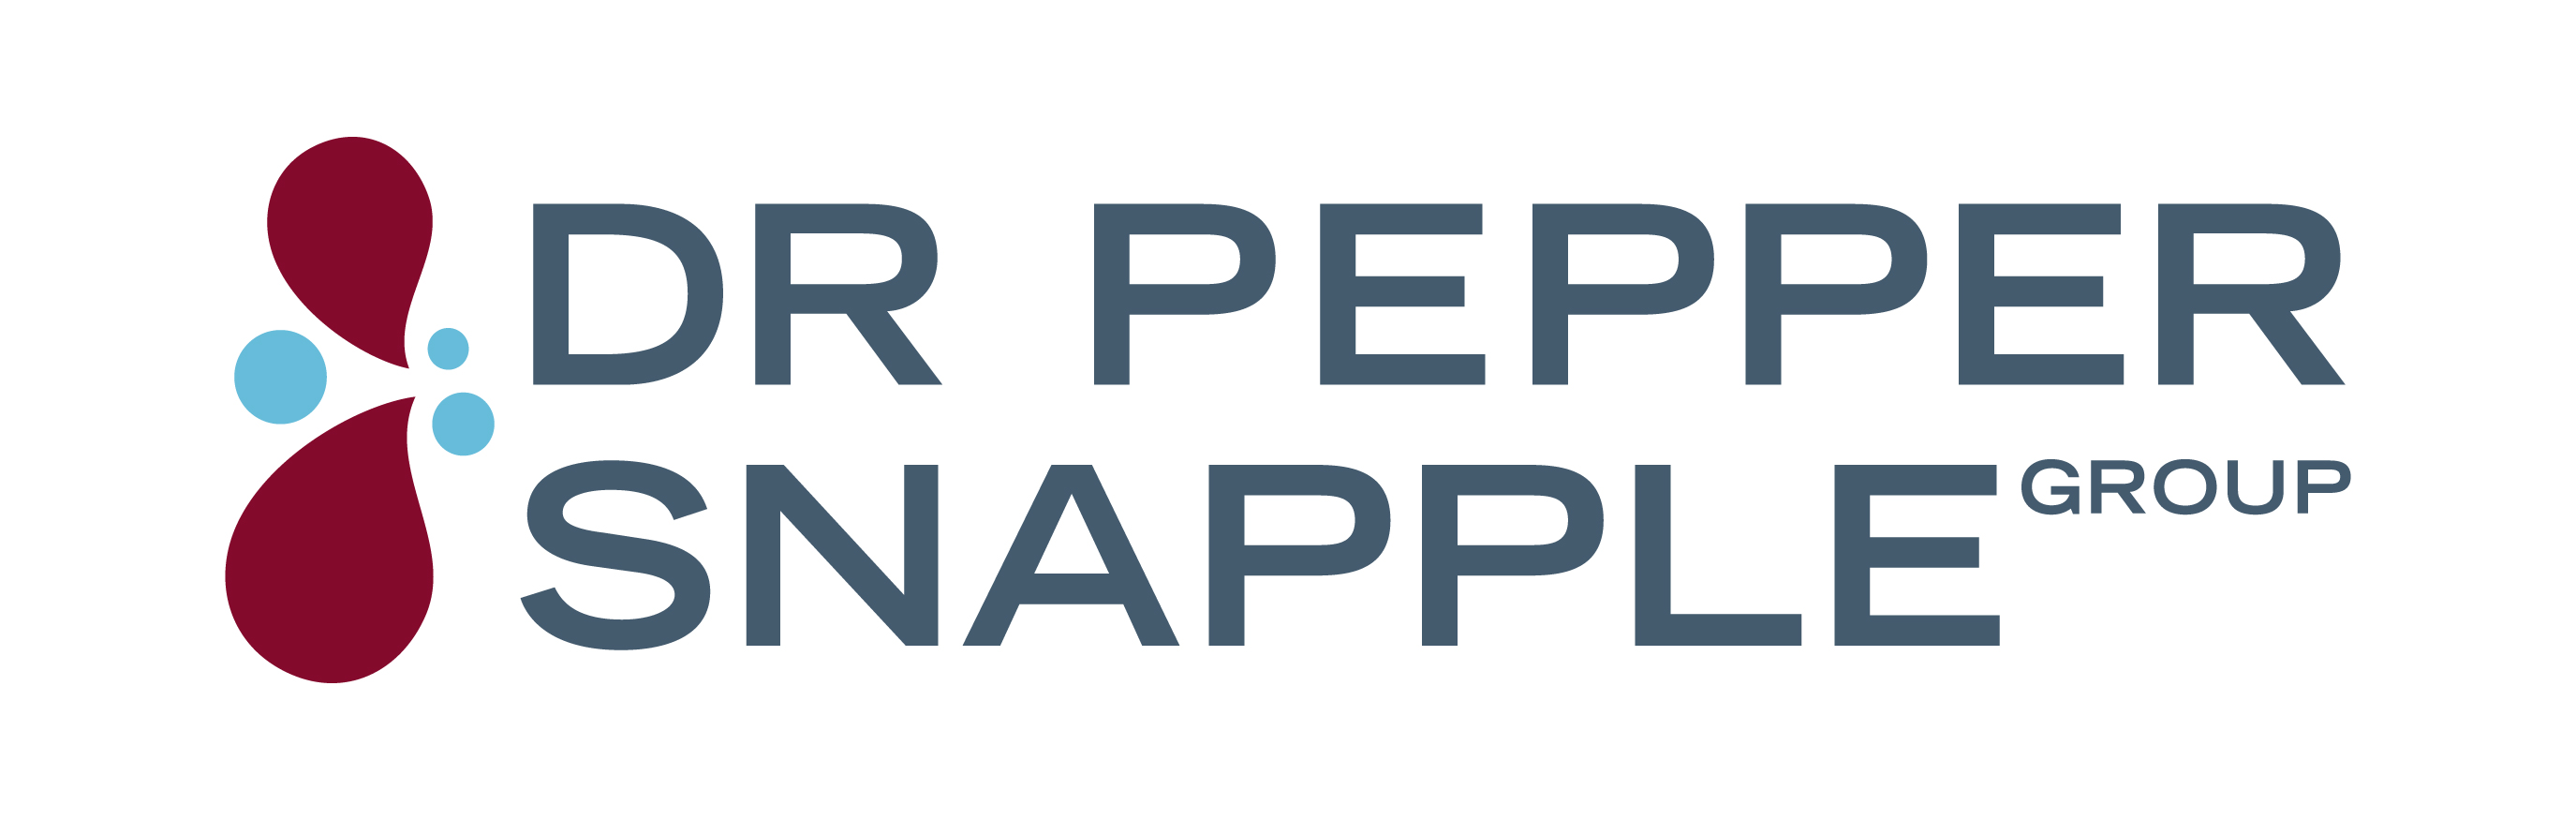 dr pepper snapple group corporate social responsibility health and wellness logo vector health and wellness logo images in texas city